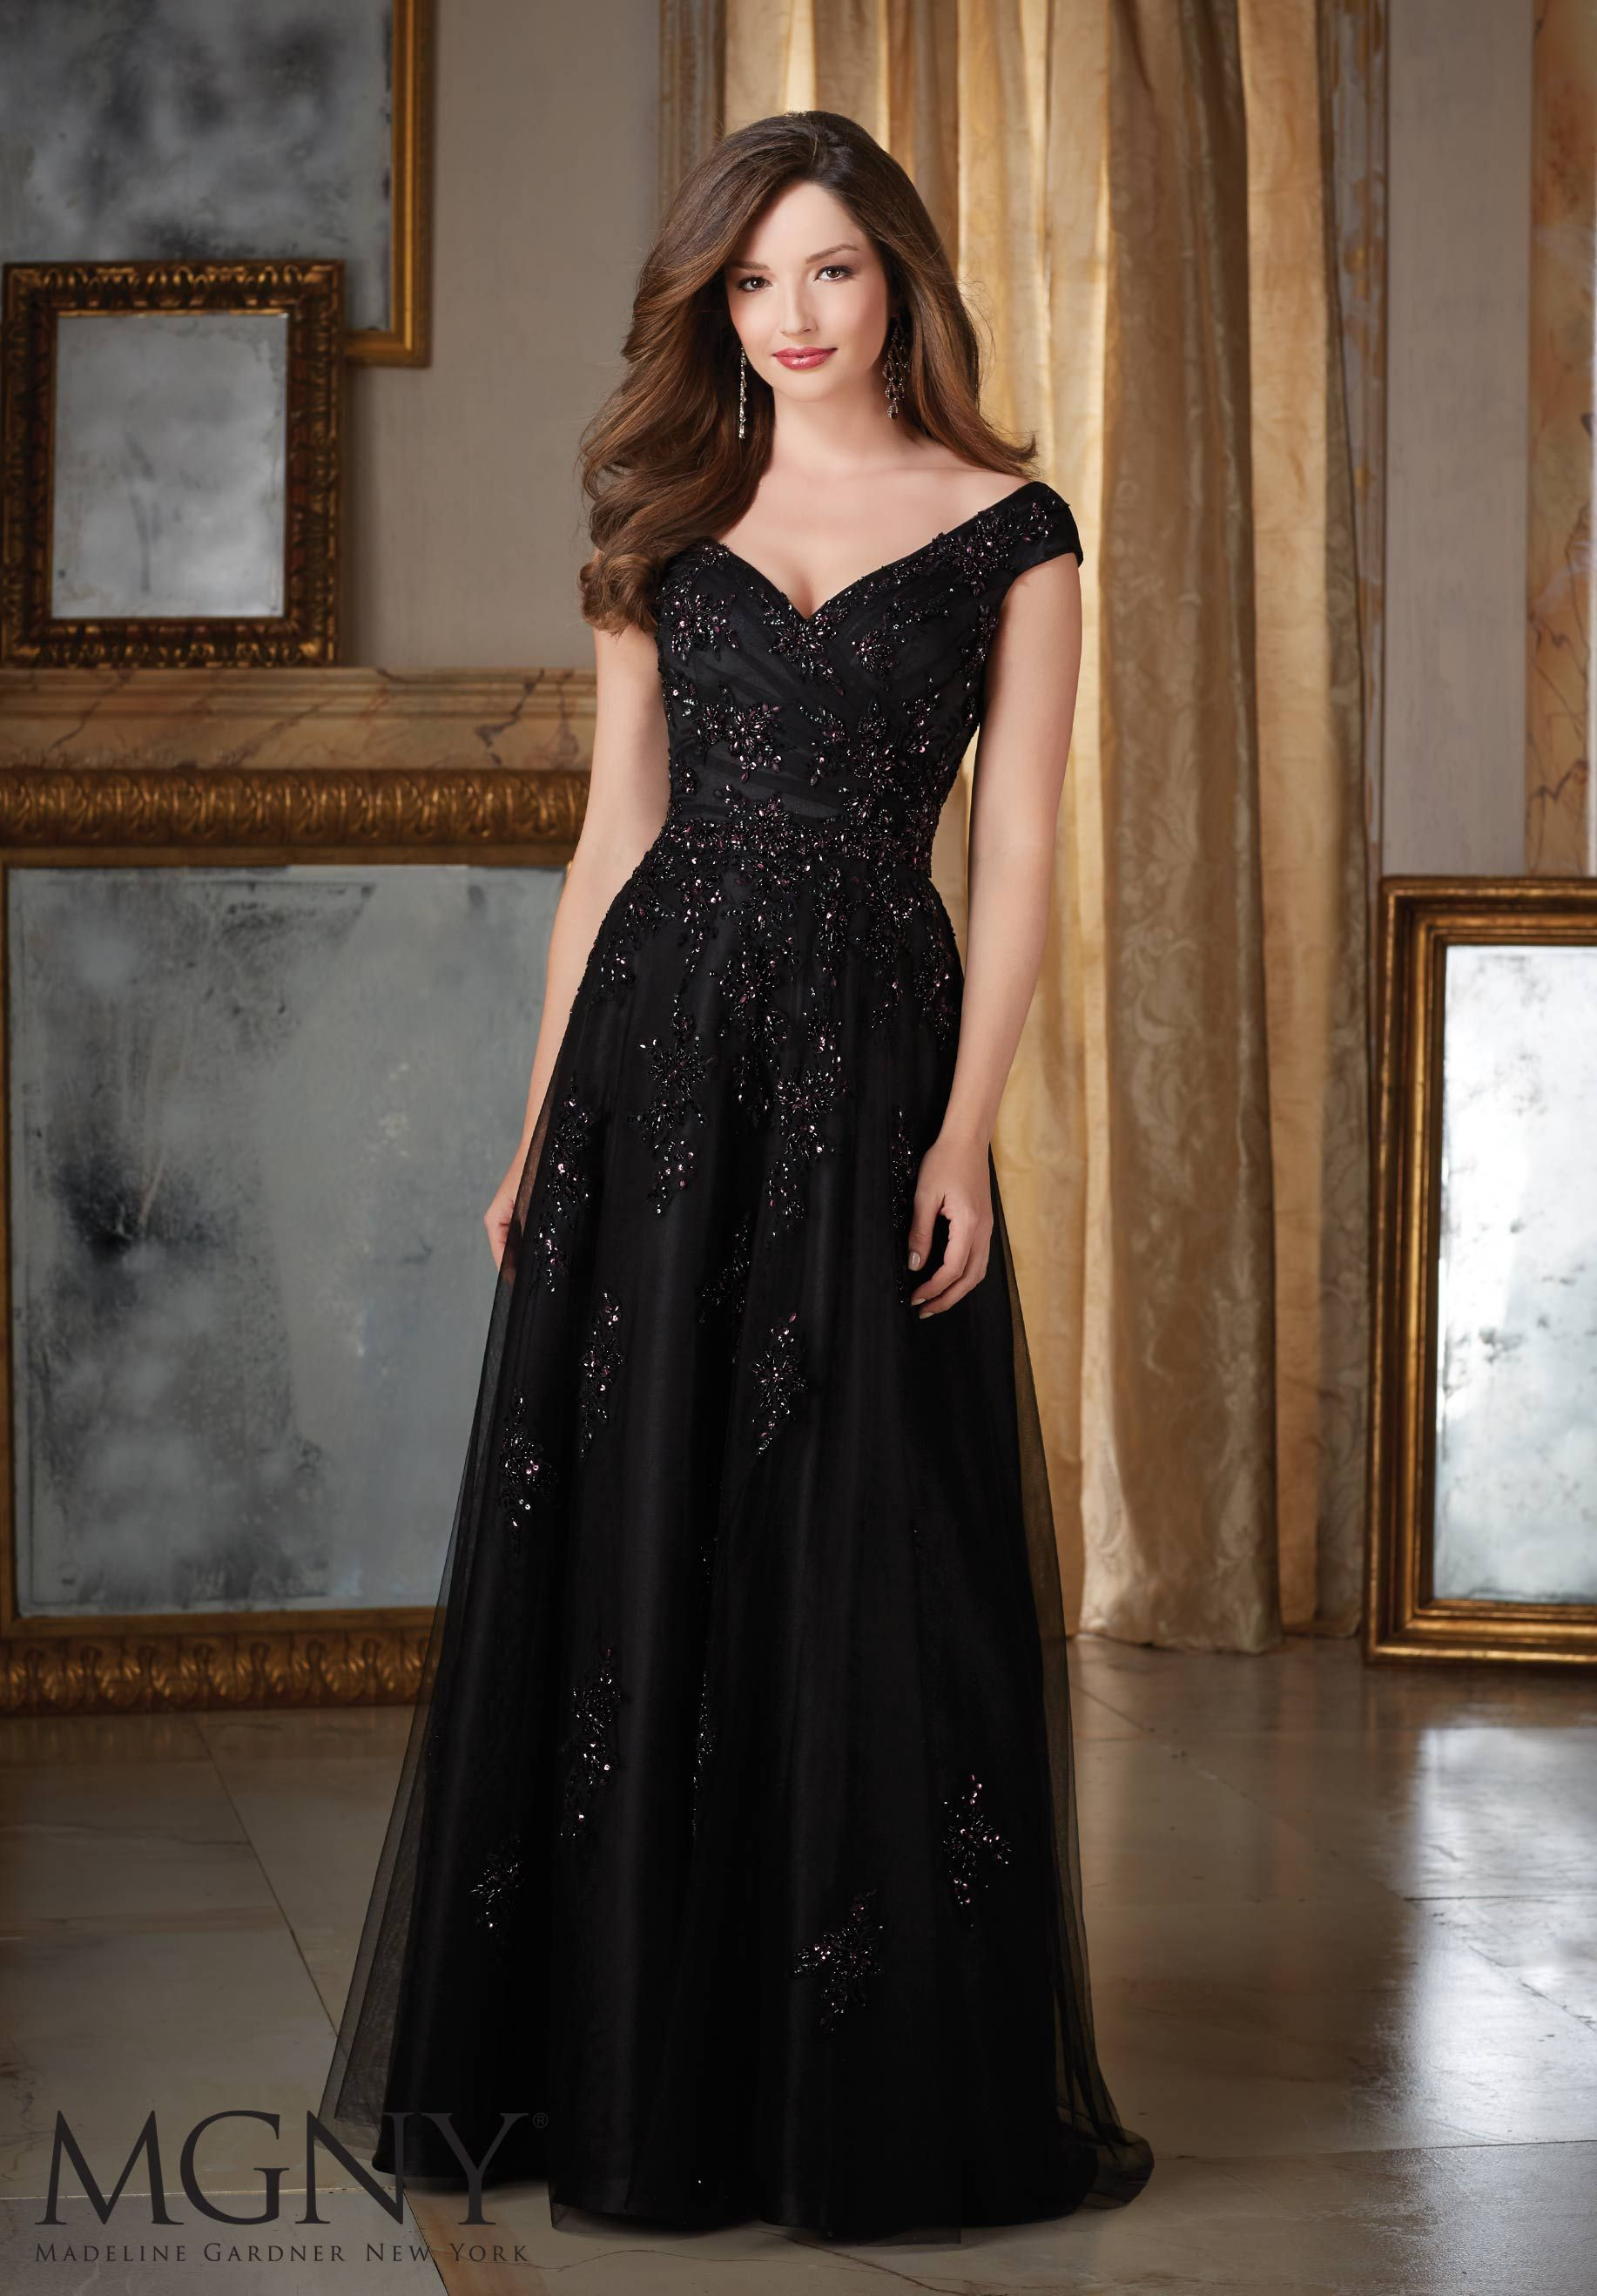 Mothers dresses for a wedding  Contrasting Beaded Appliques on Net Mother of the Bride Dress